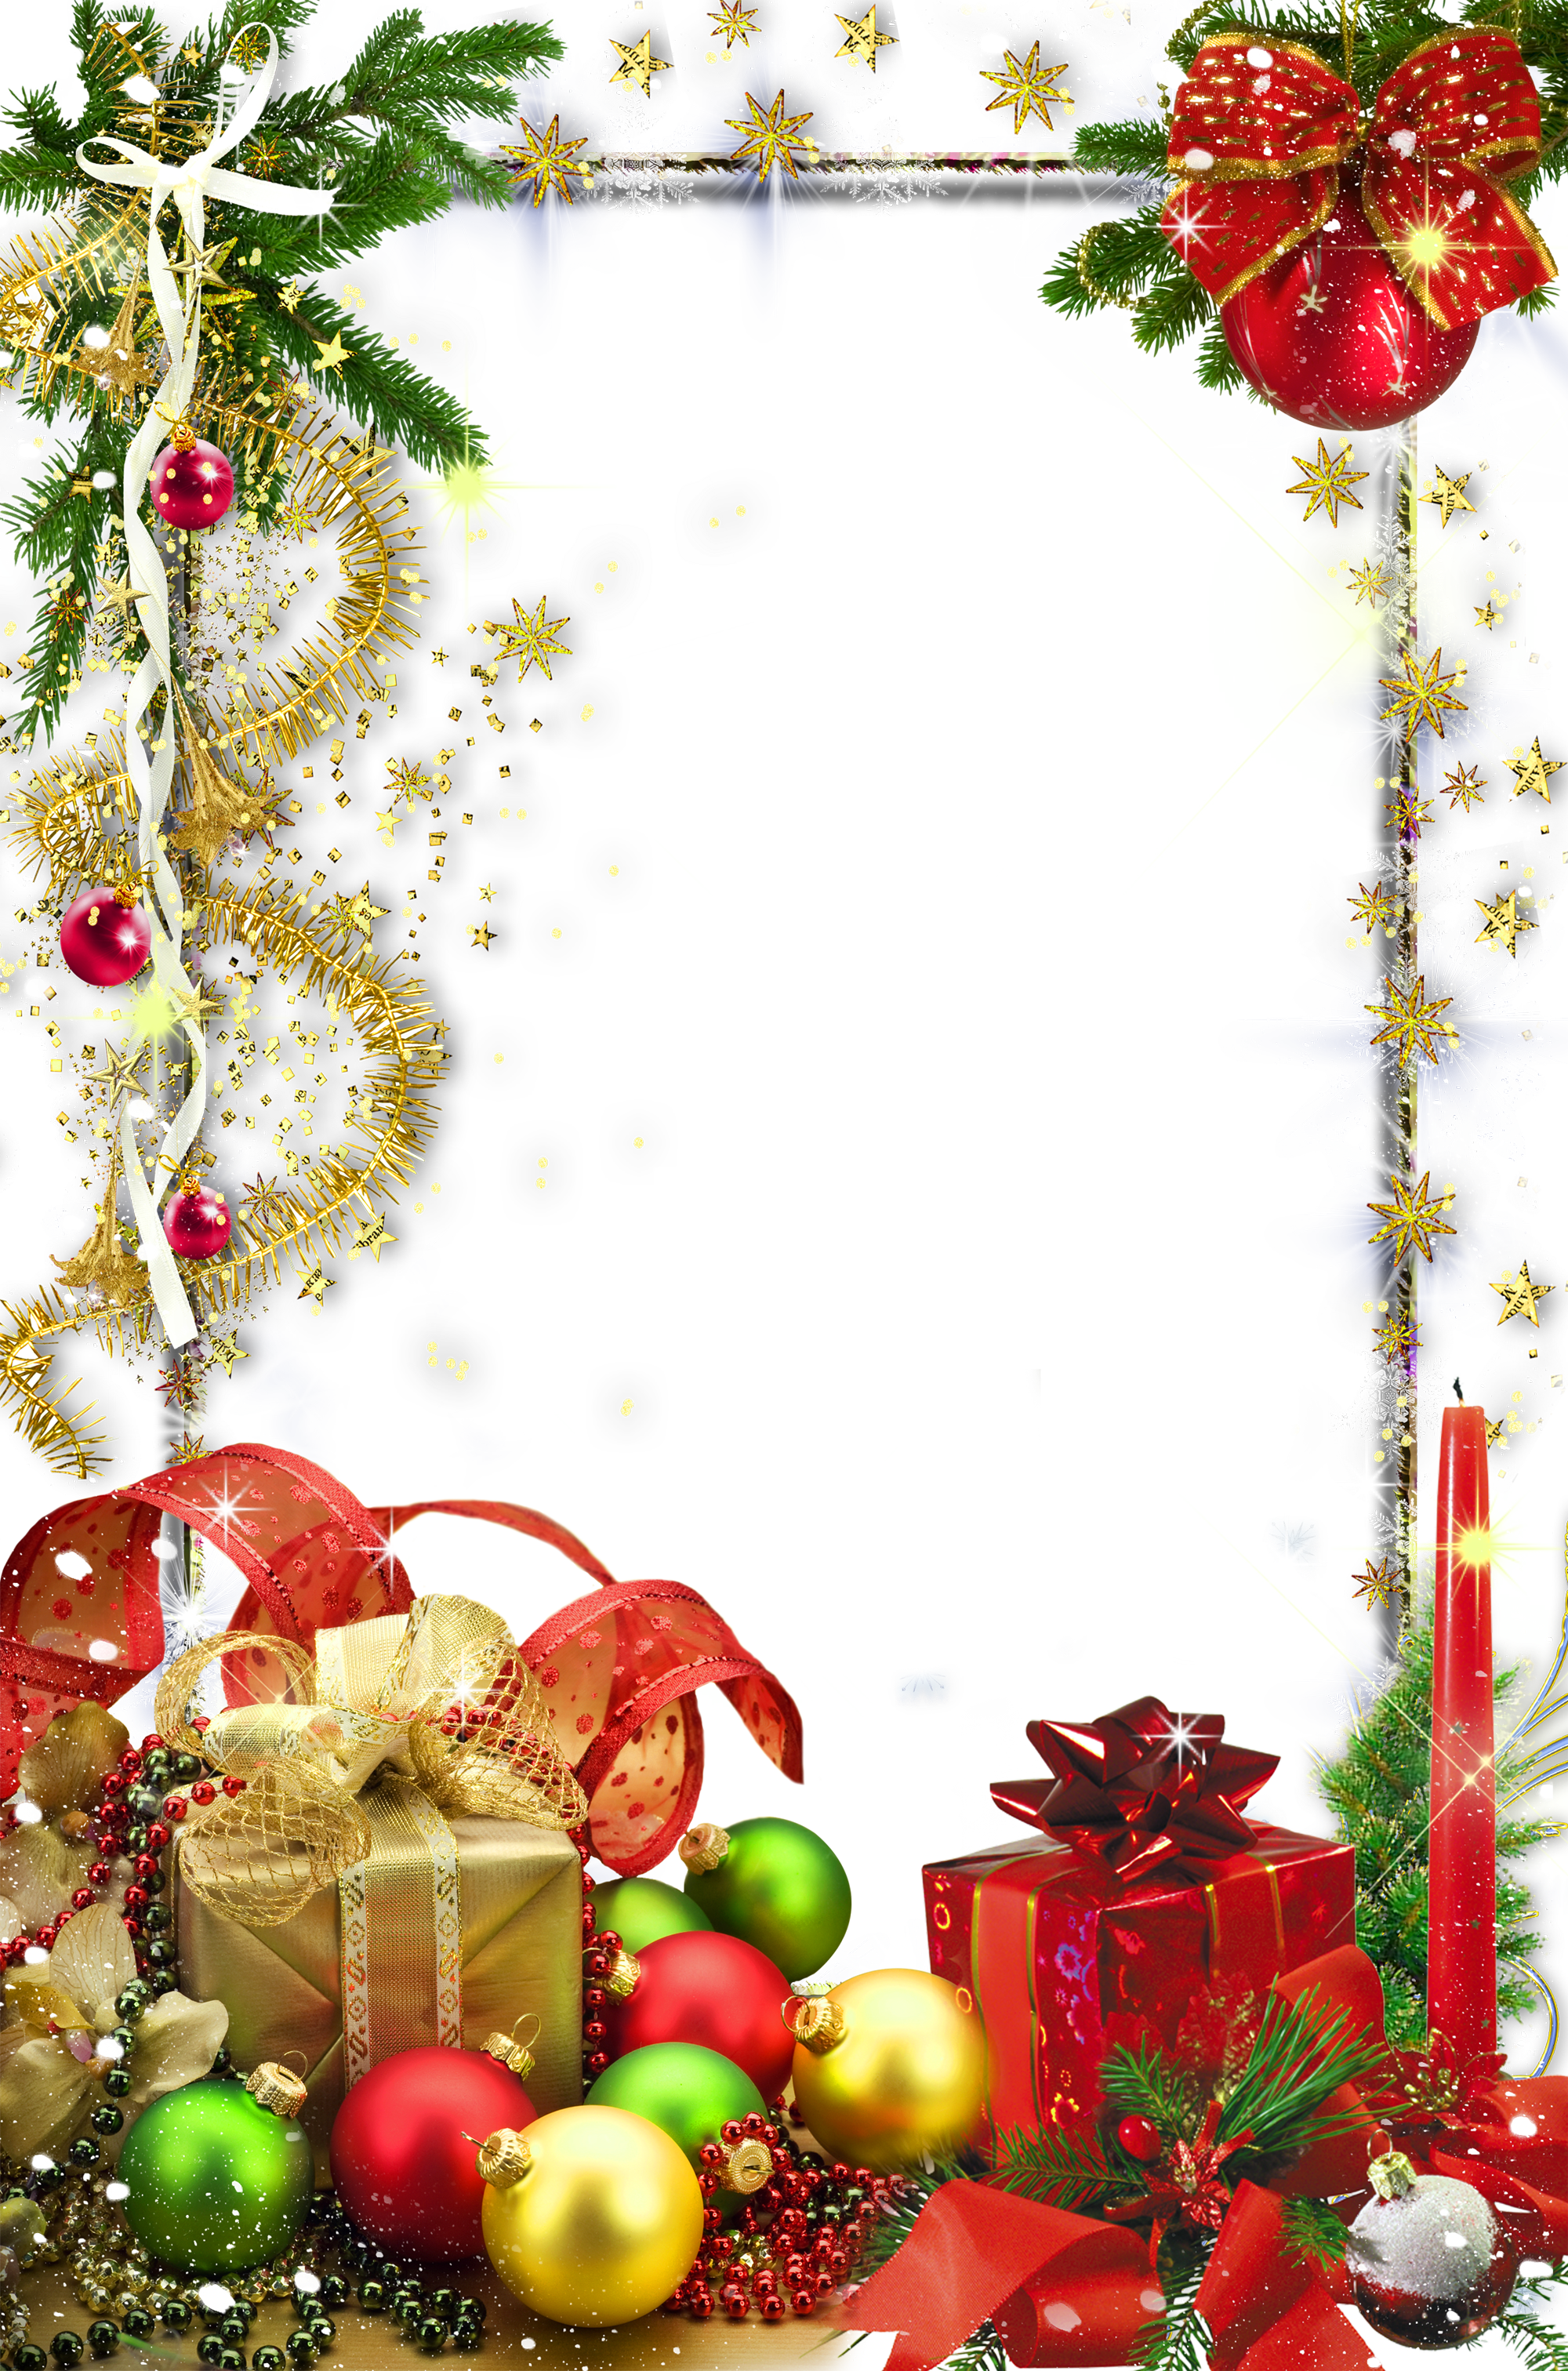 Christmas wallpaper clipart jpg transparent Transparent Christmas Holiday Photo Frame | Christmas❆ClipArt, PNG ... jpg transparent